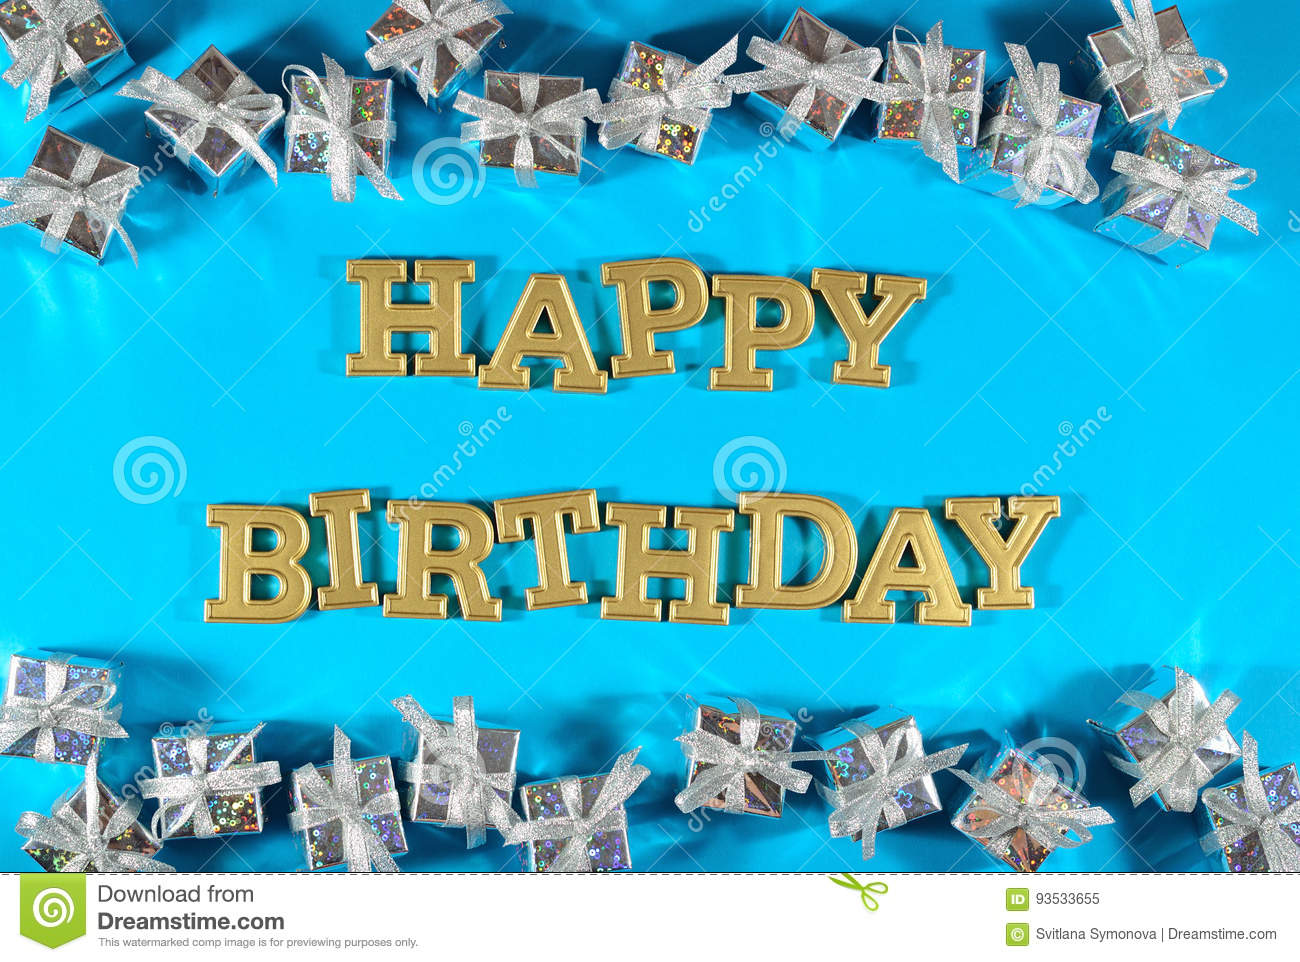 Happy birthday golden text and silver gifts on a blue